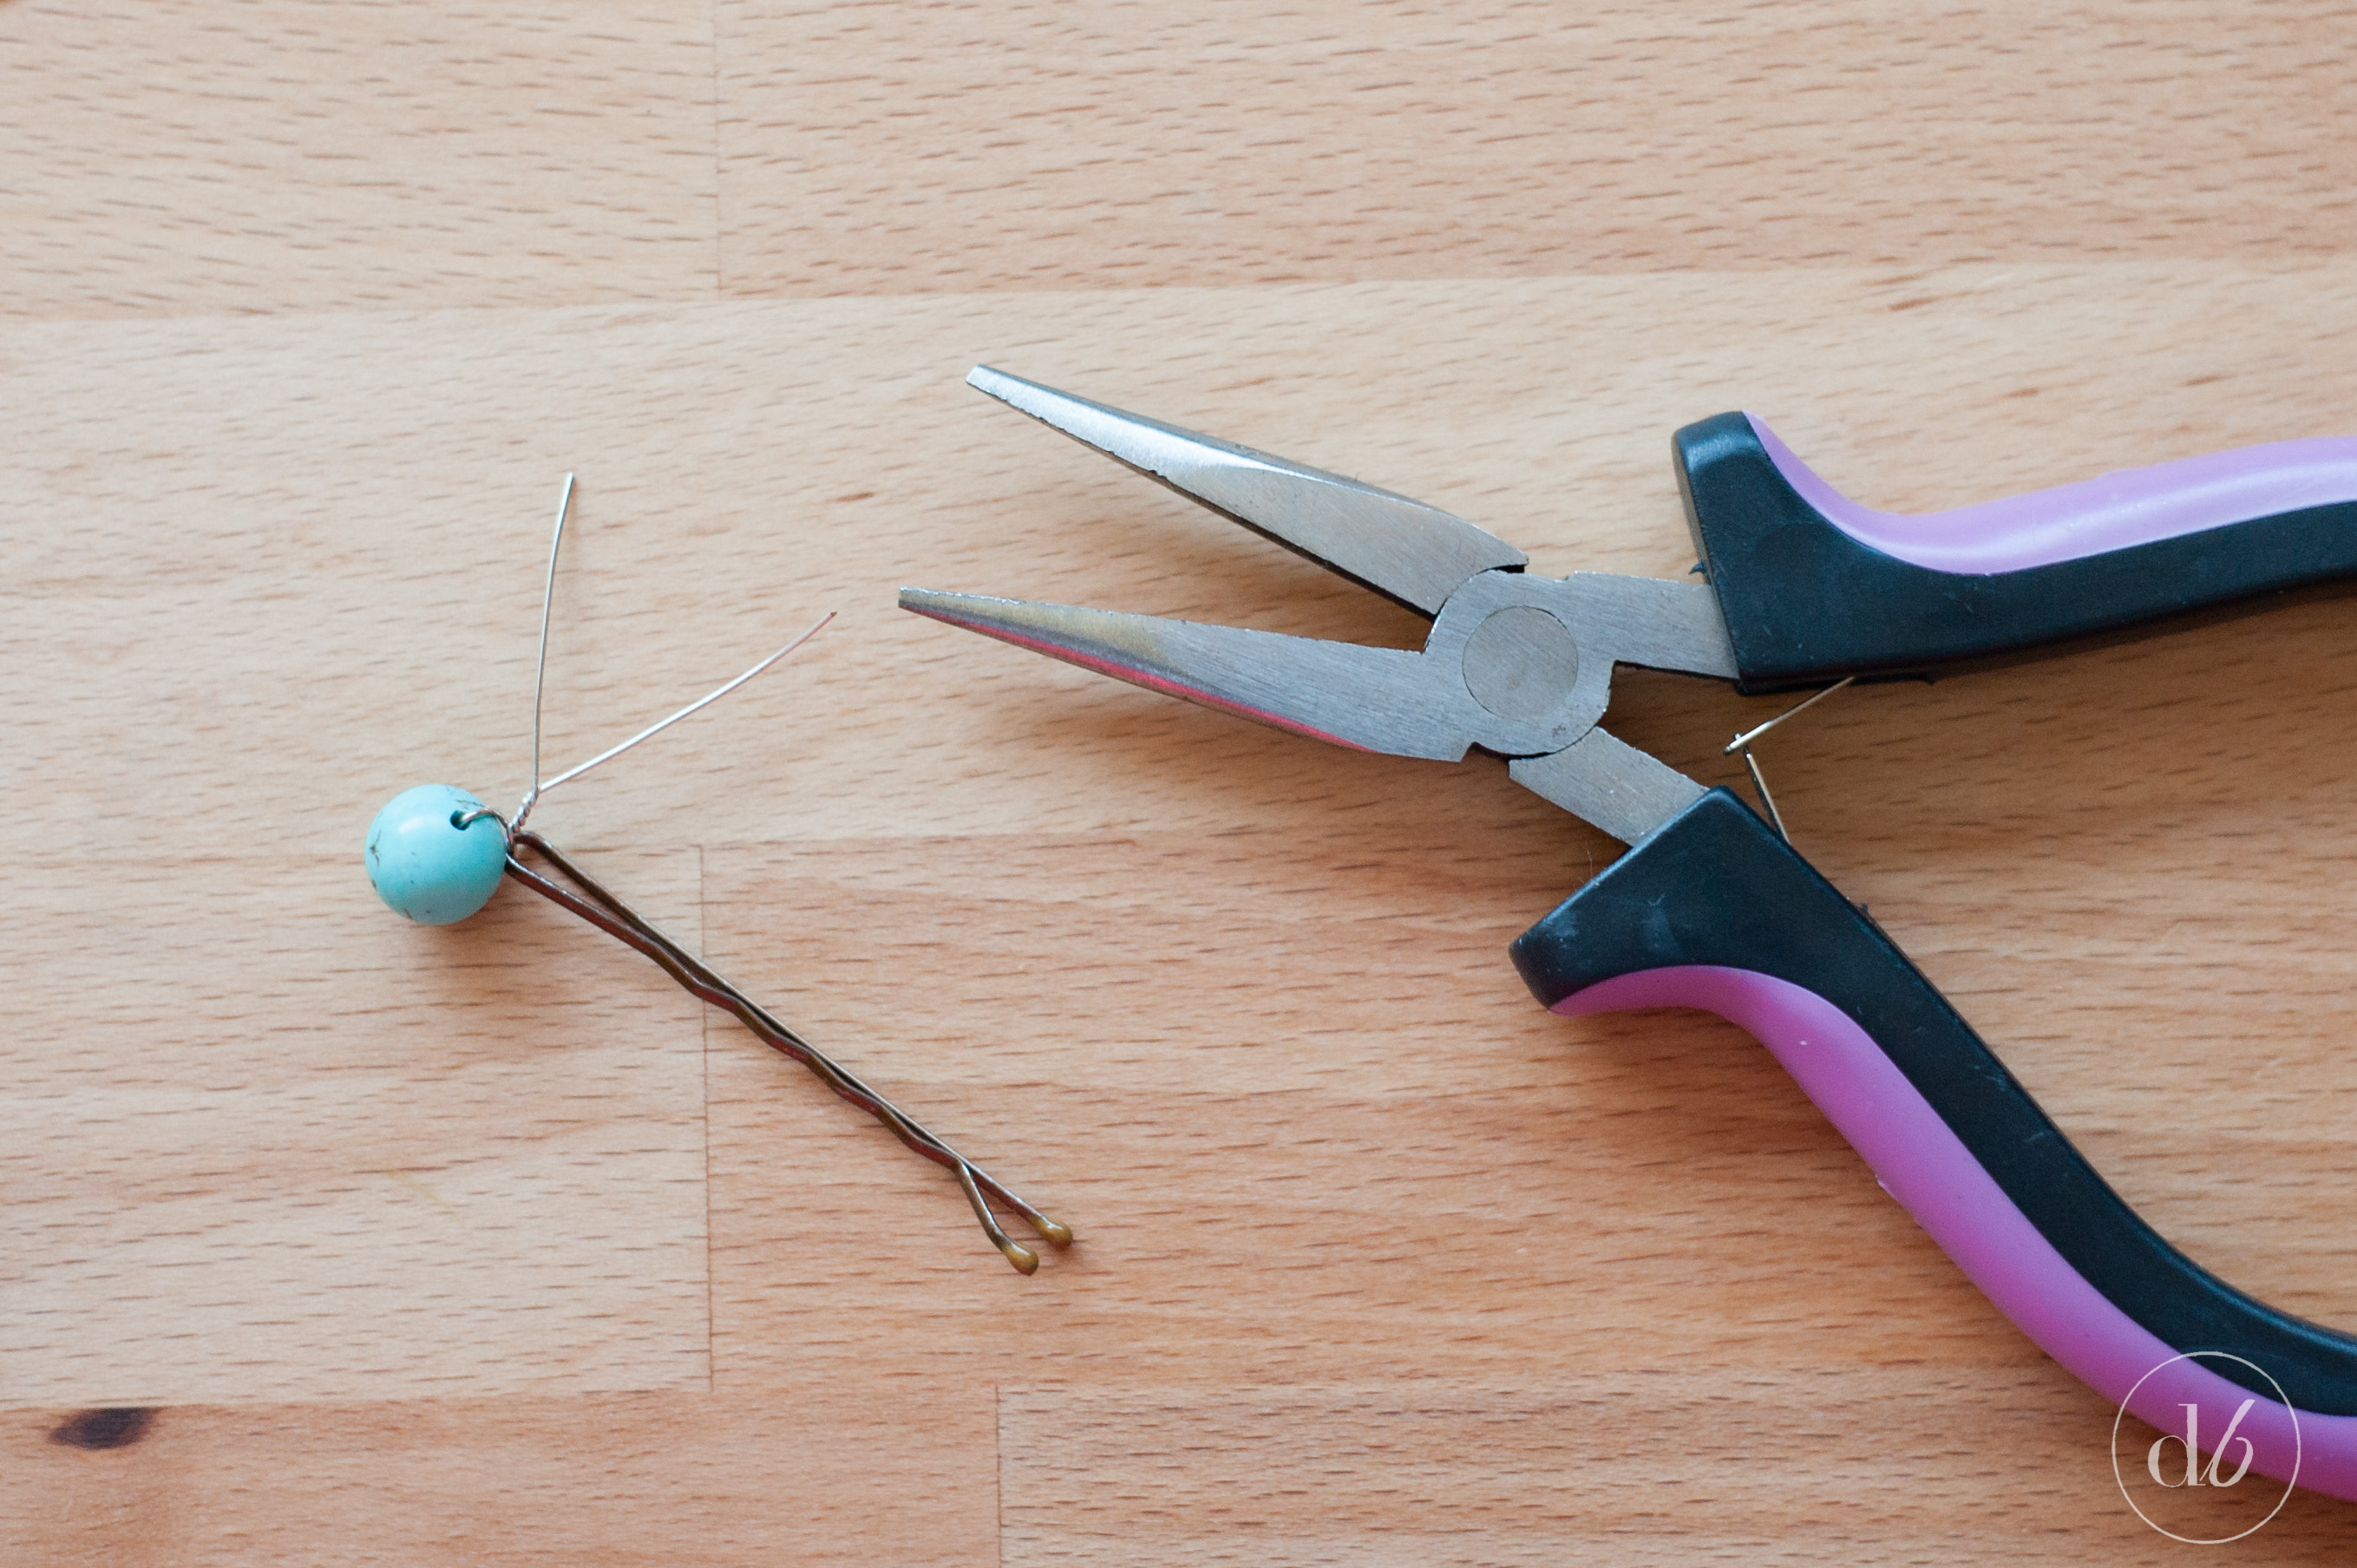 ... pins. In a few easy steps you can make your own DIY Beaded Bobby Pins